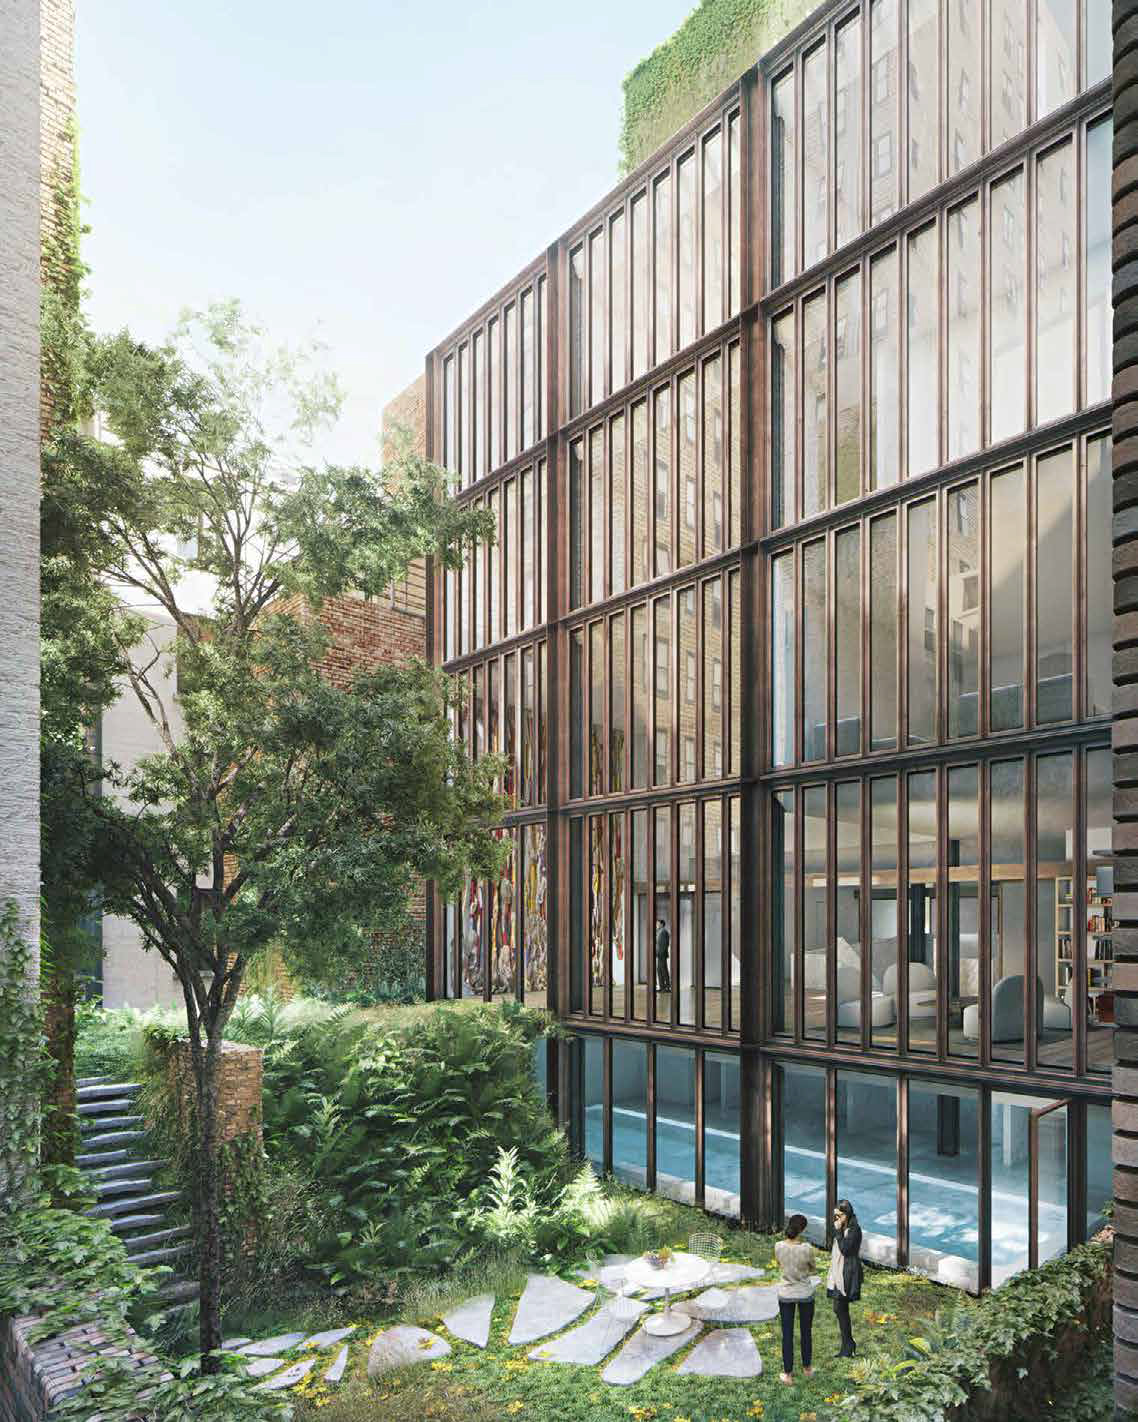 Proposal for the rear of 11-15 East 75th Street